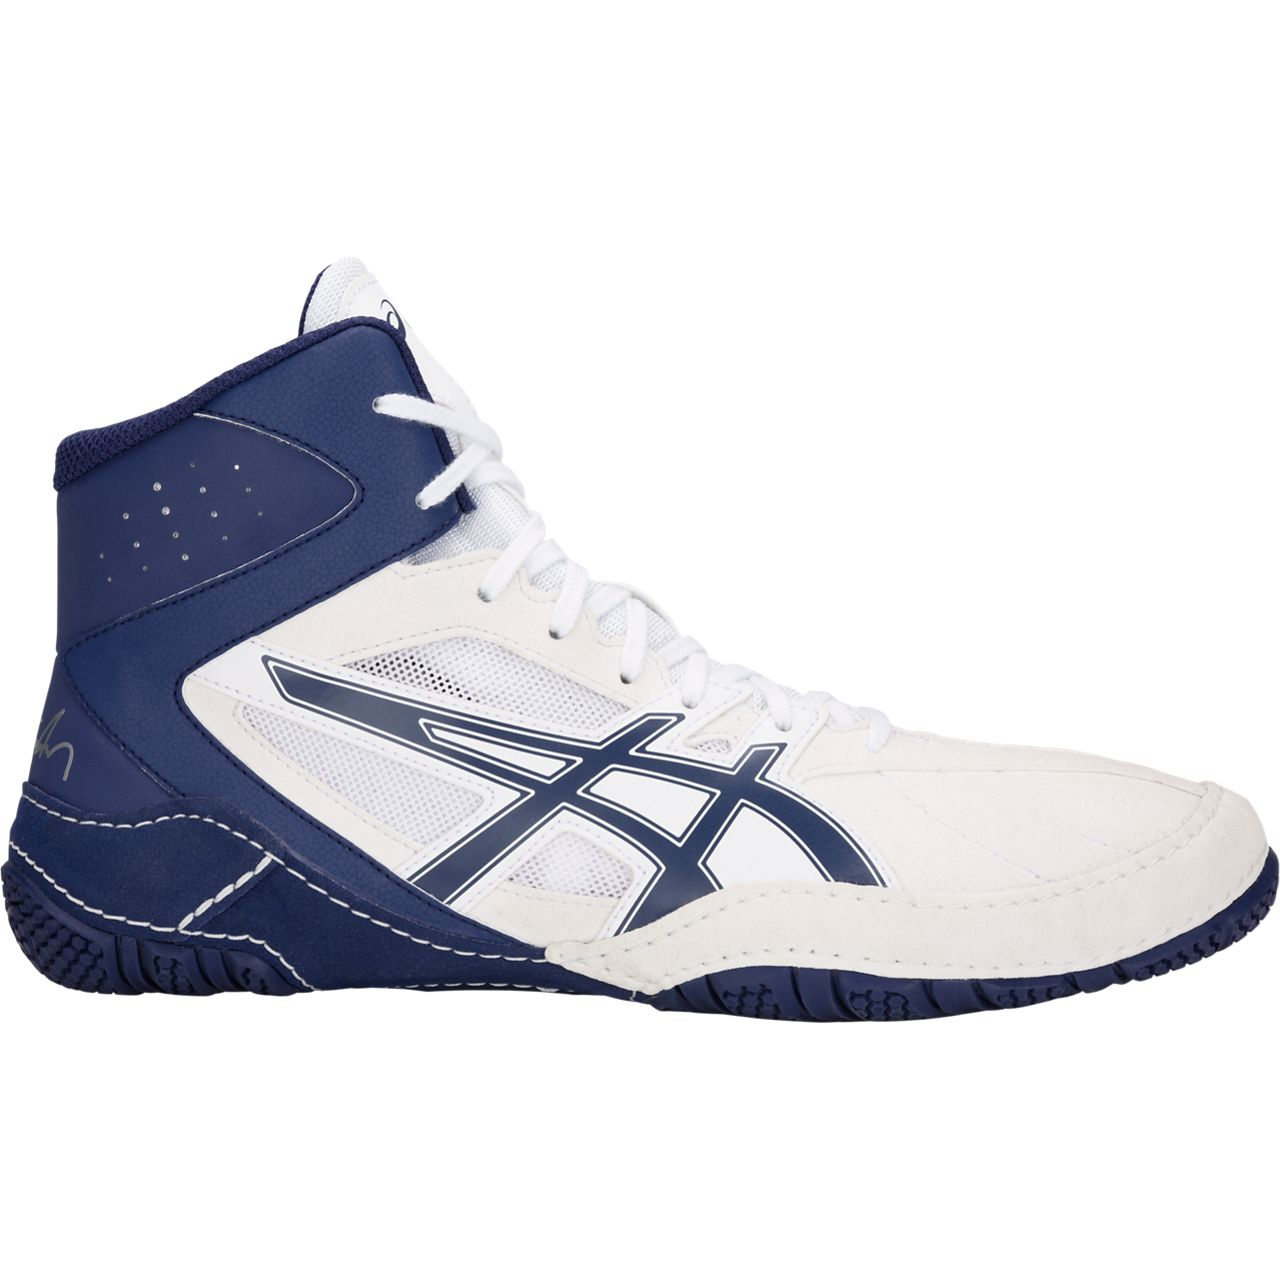 NEW!! ASICS® Cael® V8.0 Wrestling Shoes **** COLOR: (100) - Click Image to Close